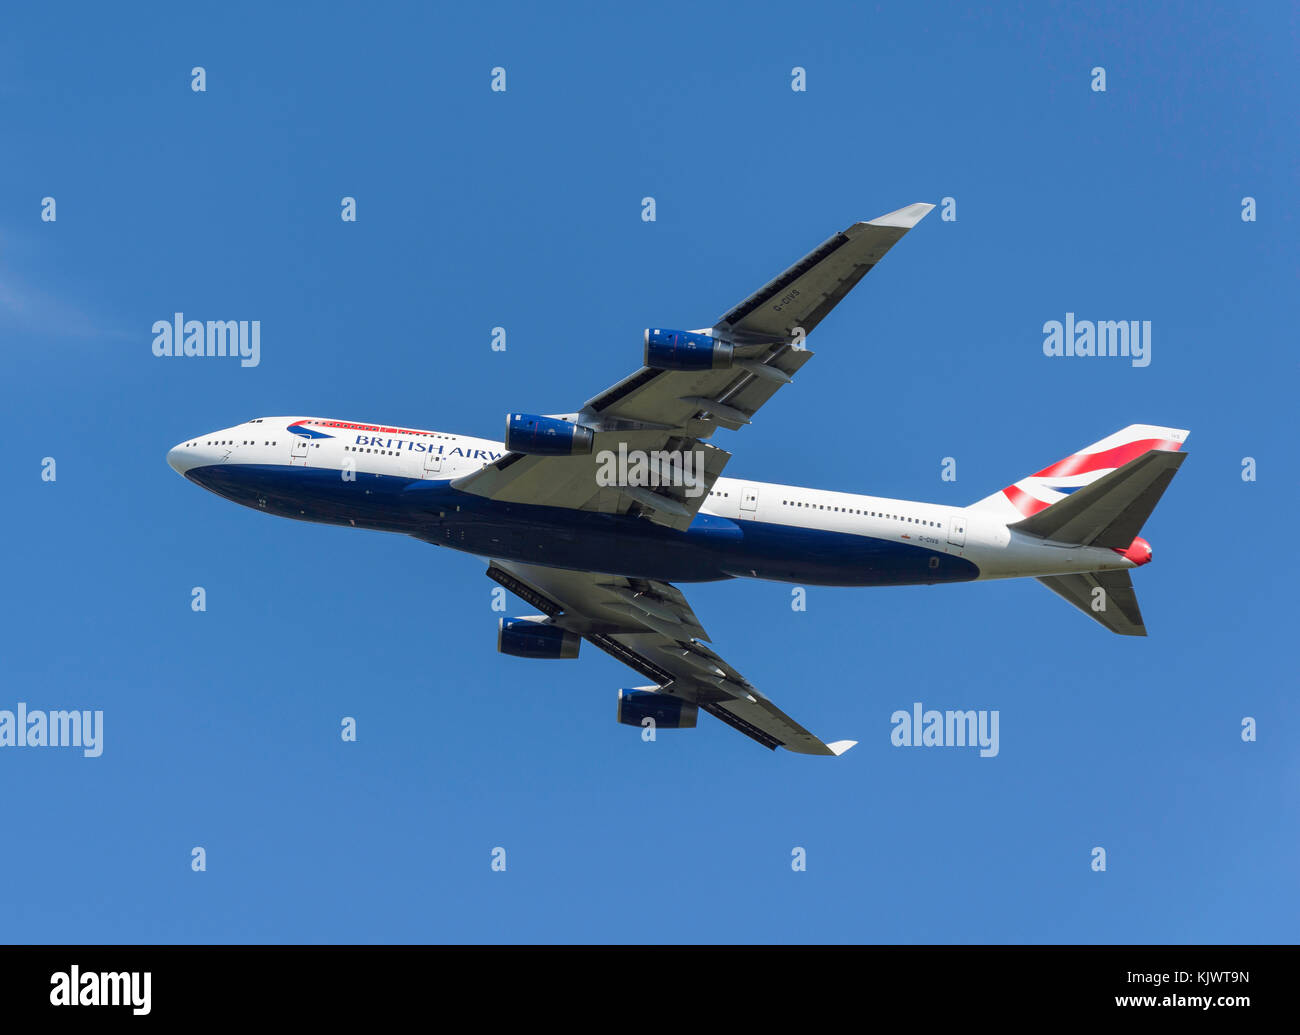 British Airways Boeing 747-436 taking off from Heathrow Airport, Greater London, England, United Kingdom - Stock Image